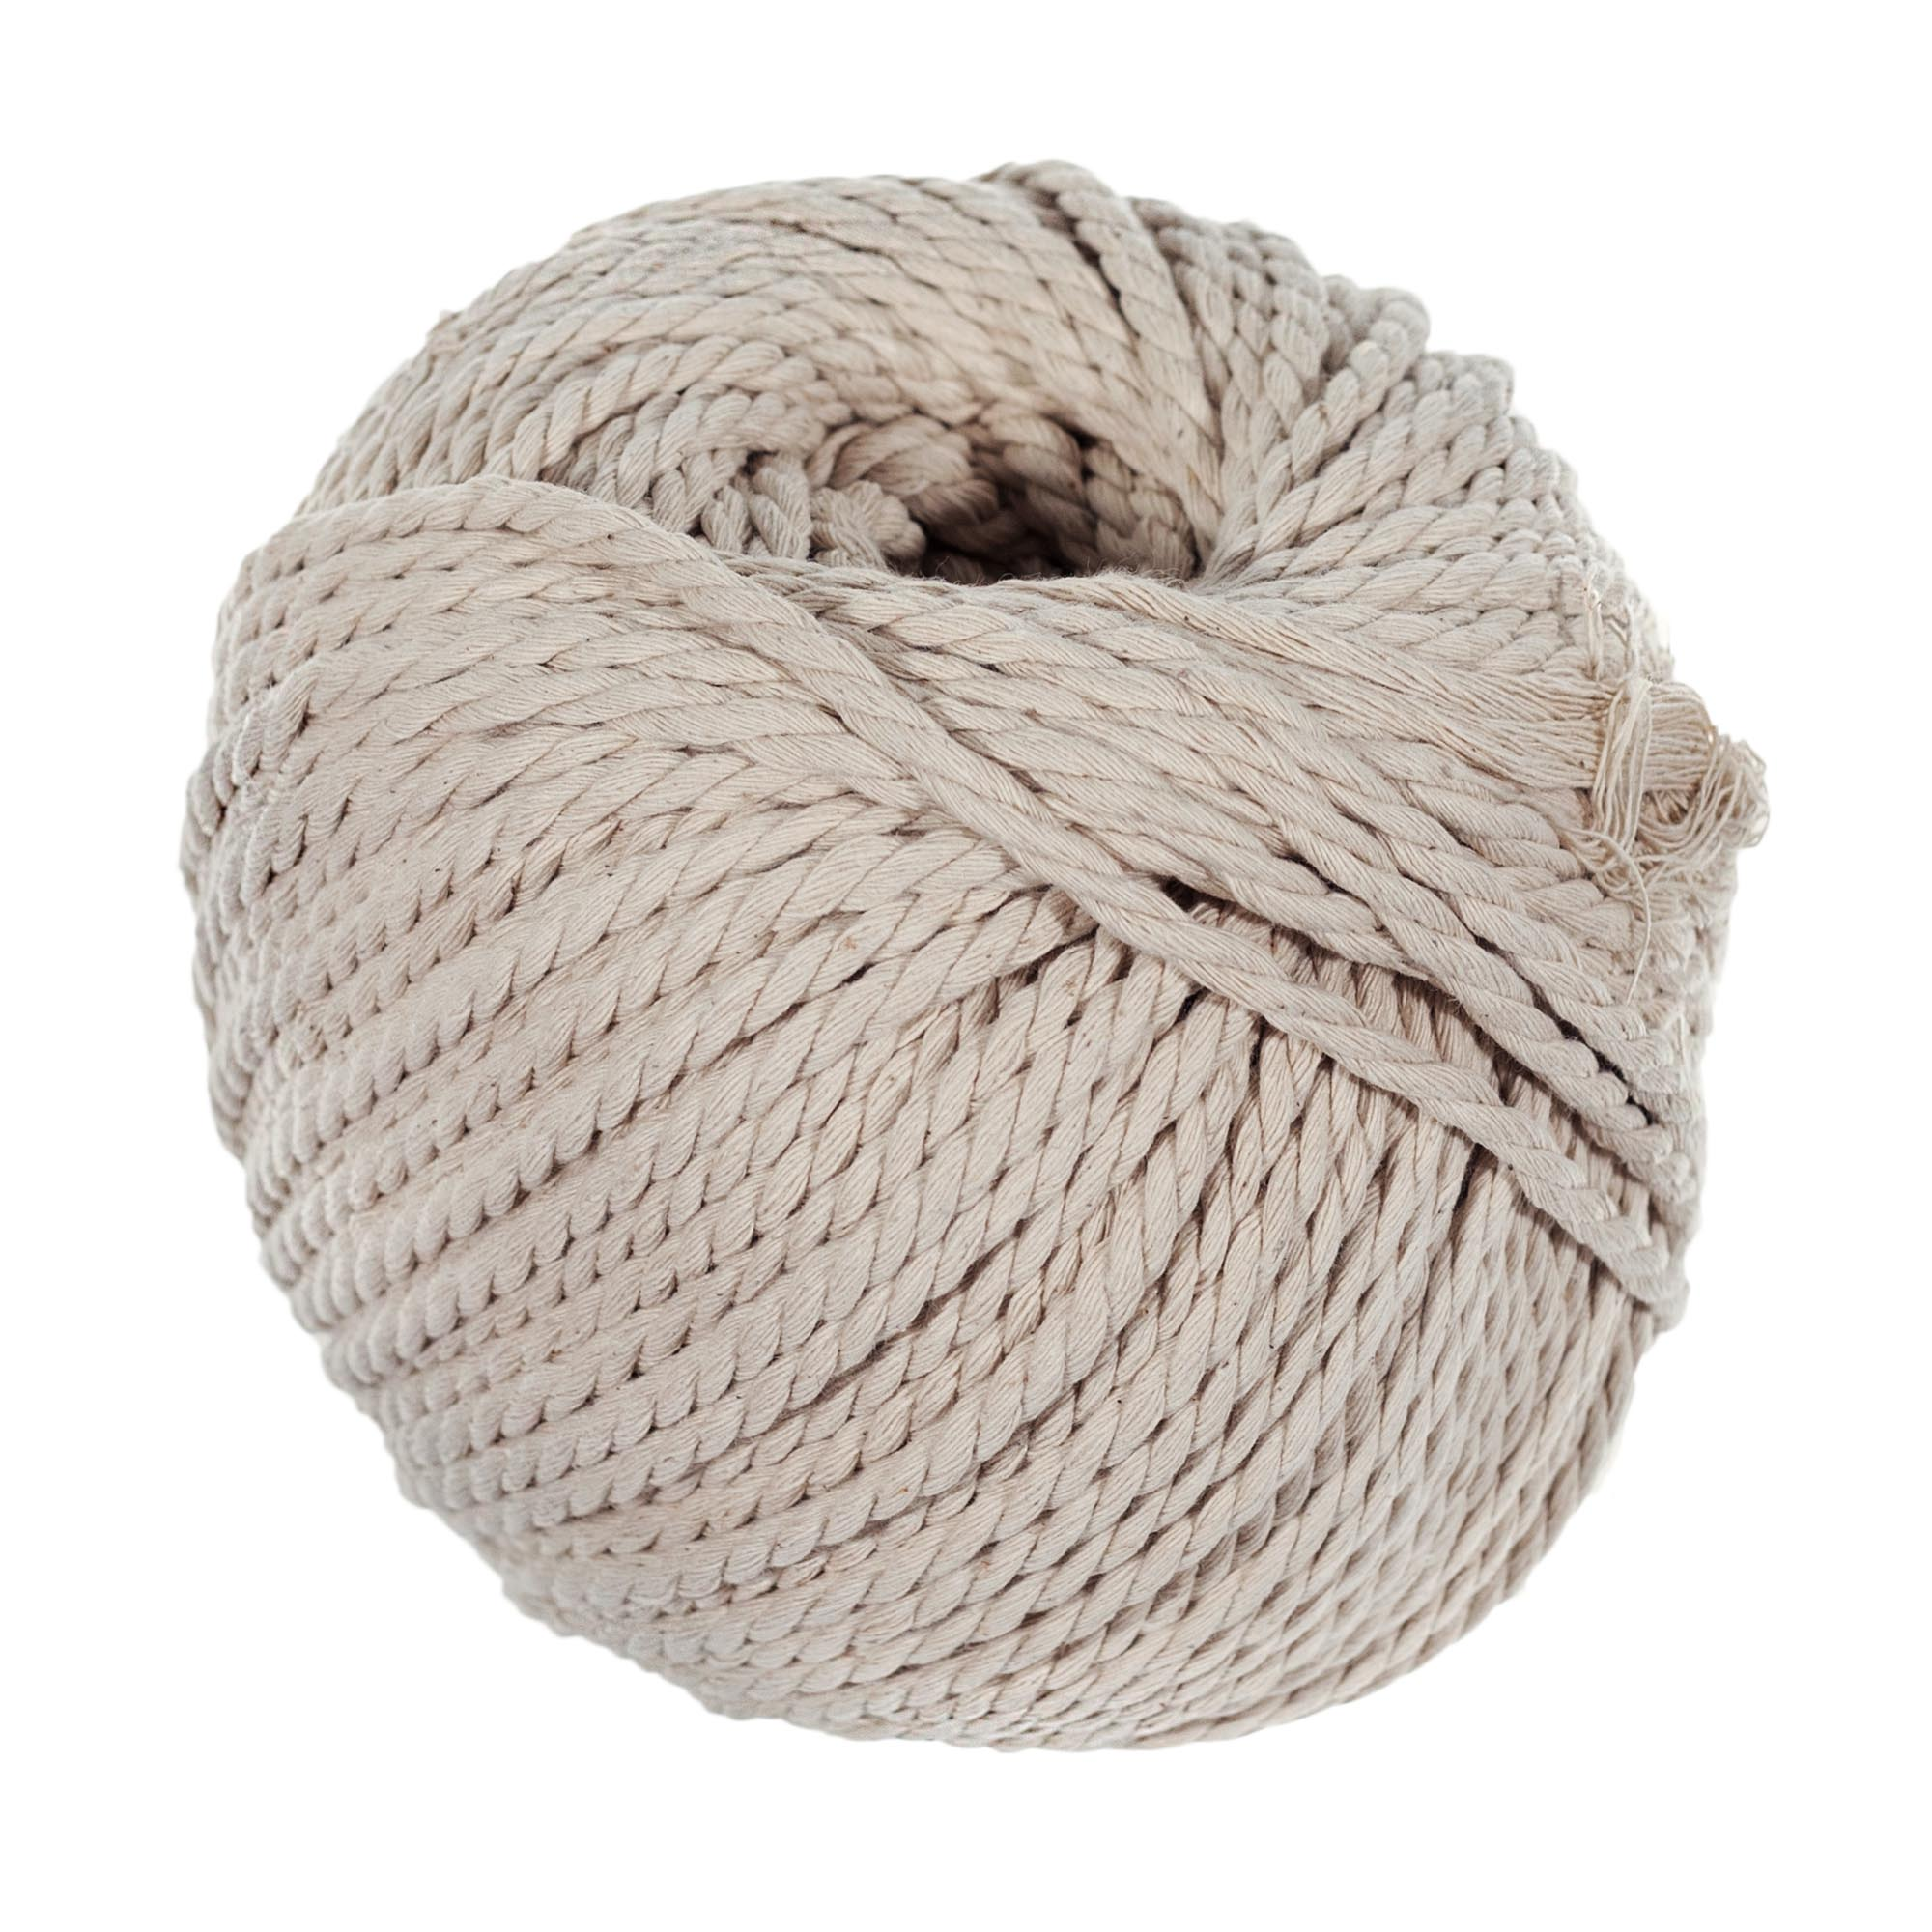 Craft County 80 Meter Skein of 4mm Diameter Crafting Cotton Rope in Black, Gray, Ivory, Light Pink, & Tan